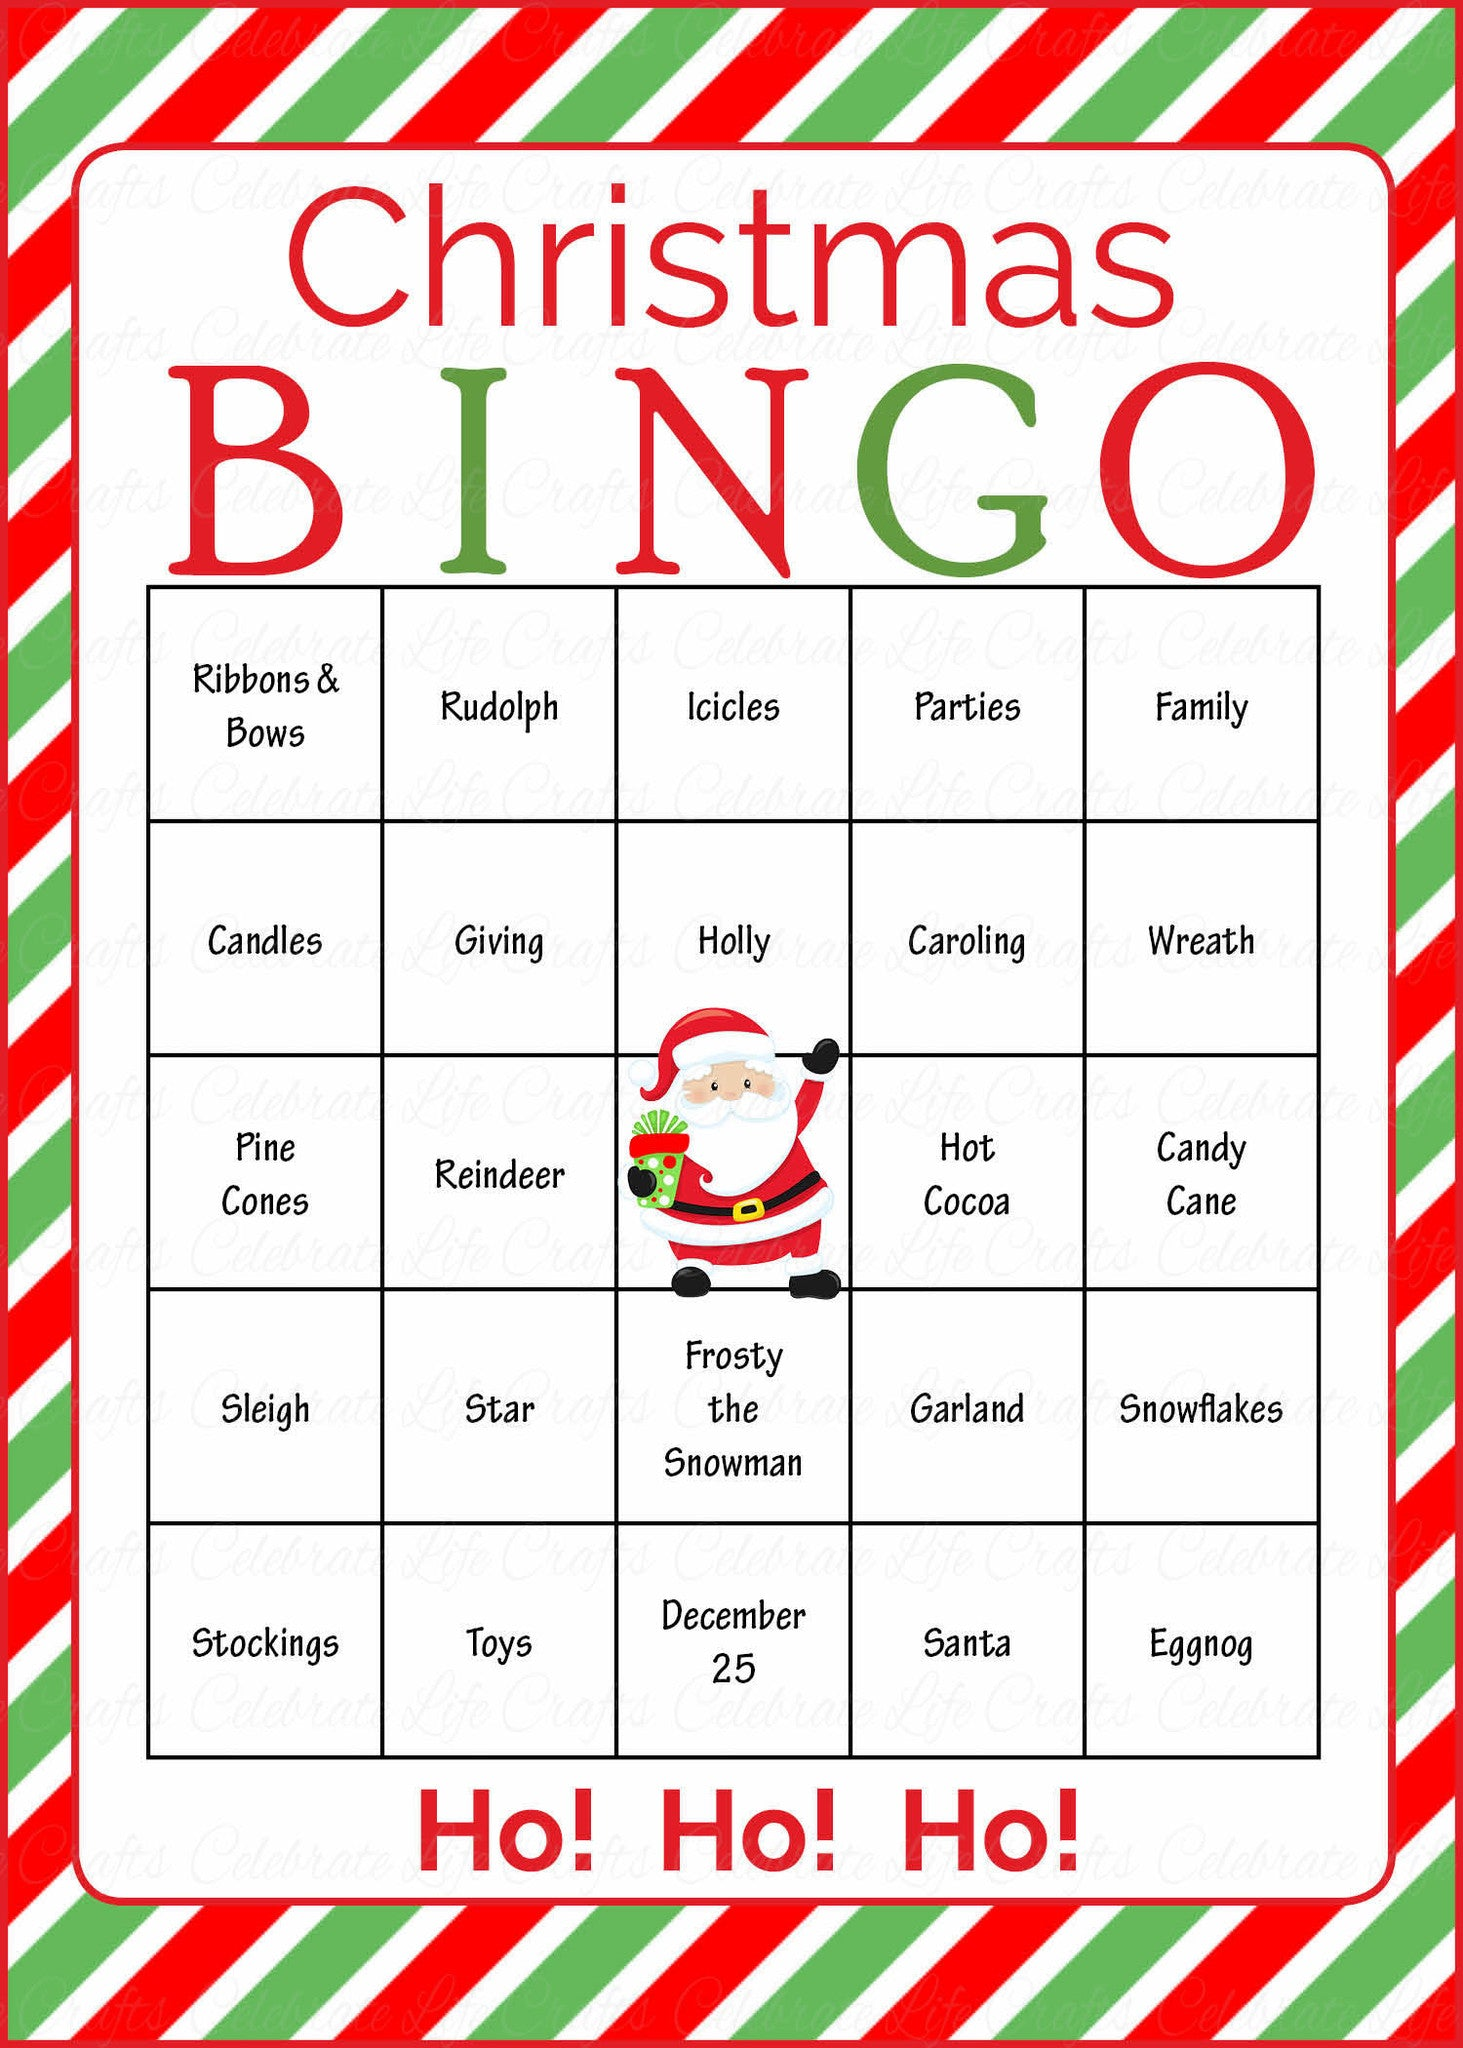 Christmas Bingo Game Download For Holiday Party Ideas Christmas Party Games Celebrate Life Crafts